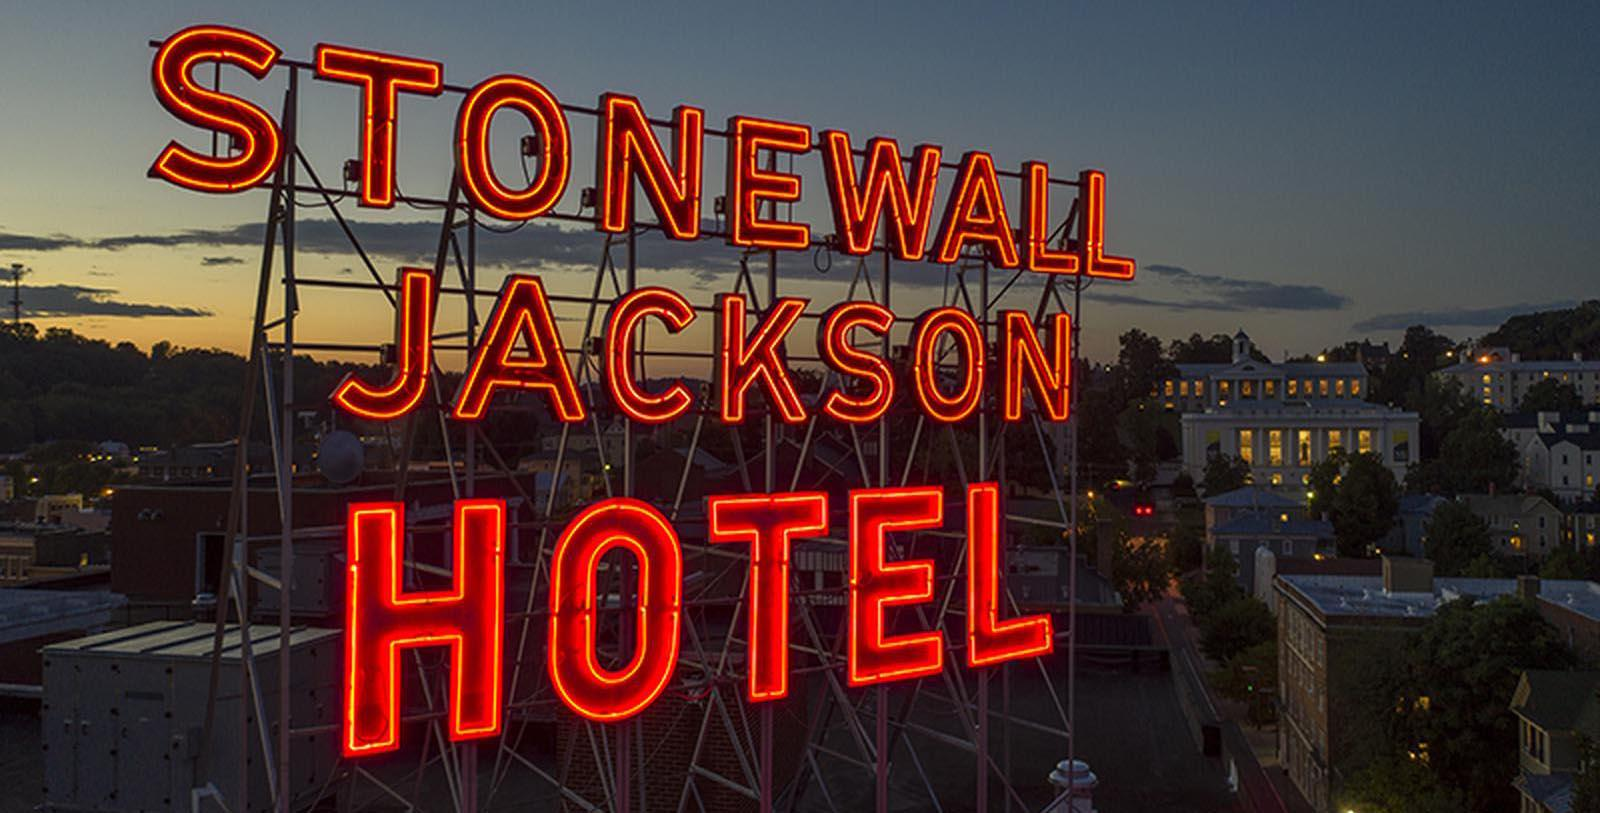 Image of Stonewall Jackson Hotel Hotel & Conference Center, 1924 Neon Sign, Member of Historic Hotels of America, in Staunton, Virginia, Hot Deals